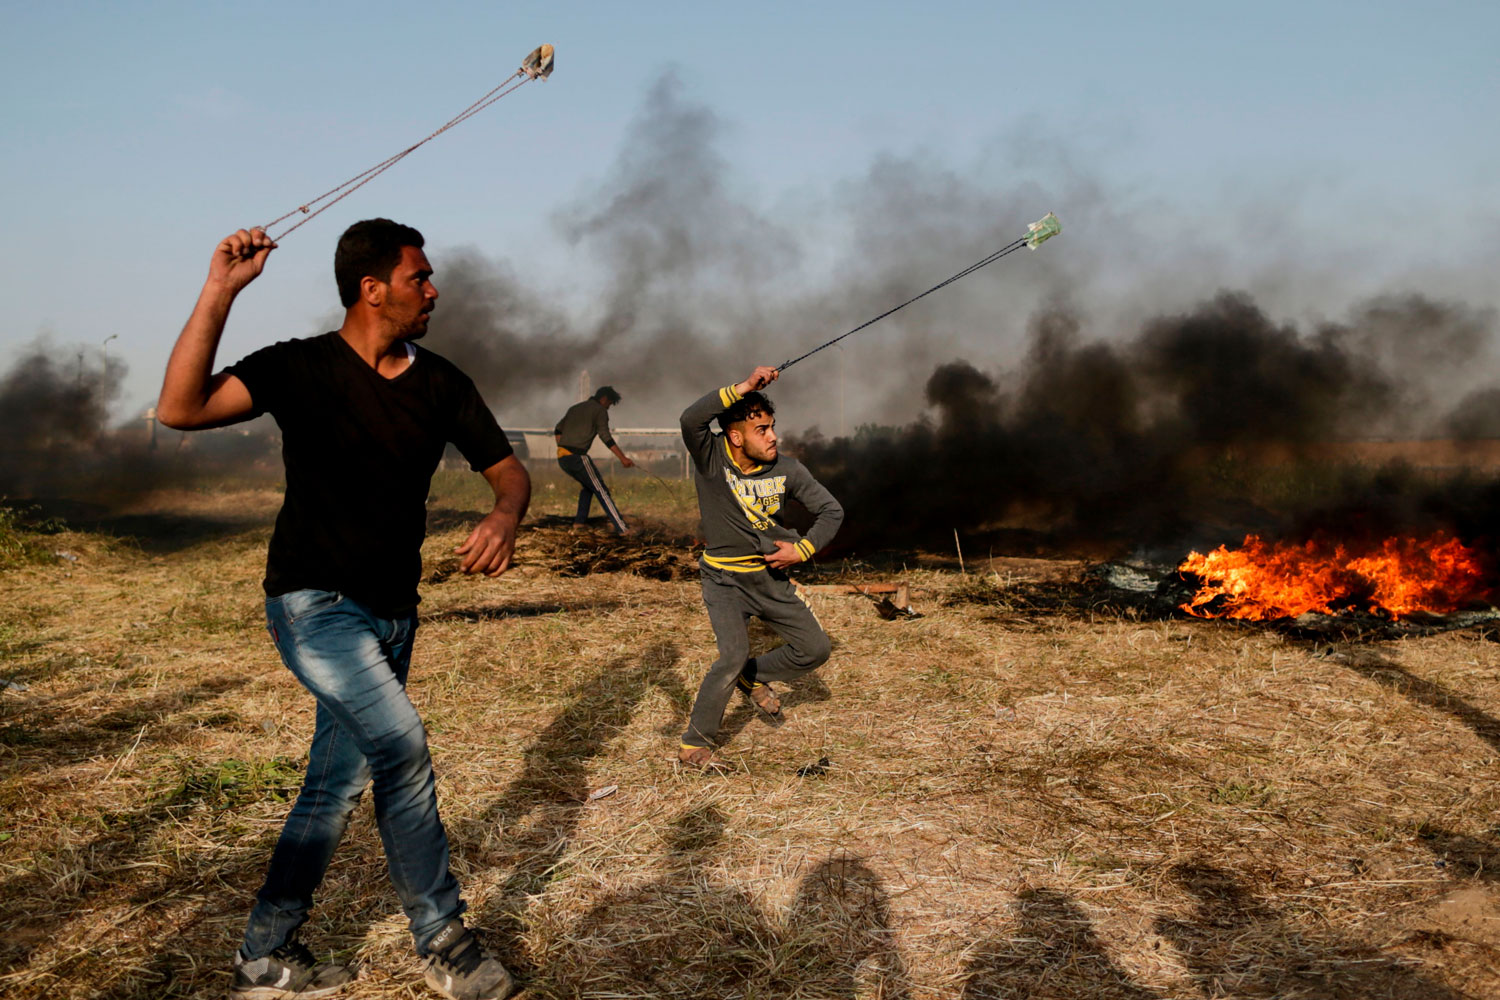 Palestinian protesters use slingshots to throw stones toward Israeli forces at the Israel-Gaza border east of Gaza City on April 4. Hundreds of Palestinian youth have set up a tent city closer to the border than in recent years, hurling stones and rolling burning tires at Israeli soldiers. The protests come on the heels of last week's deadly border demonstration in which soldiers killed 19 Palestinians. (Mahmud Hams/AFP/Getty Images)